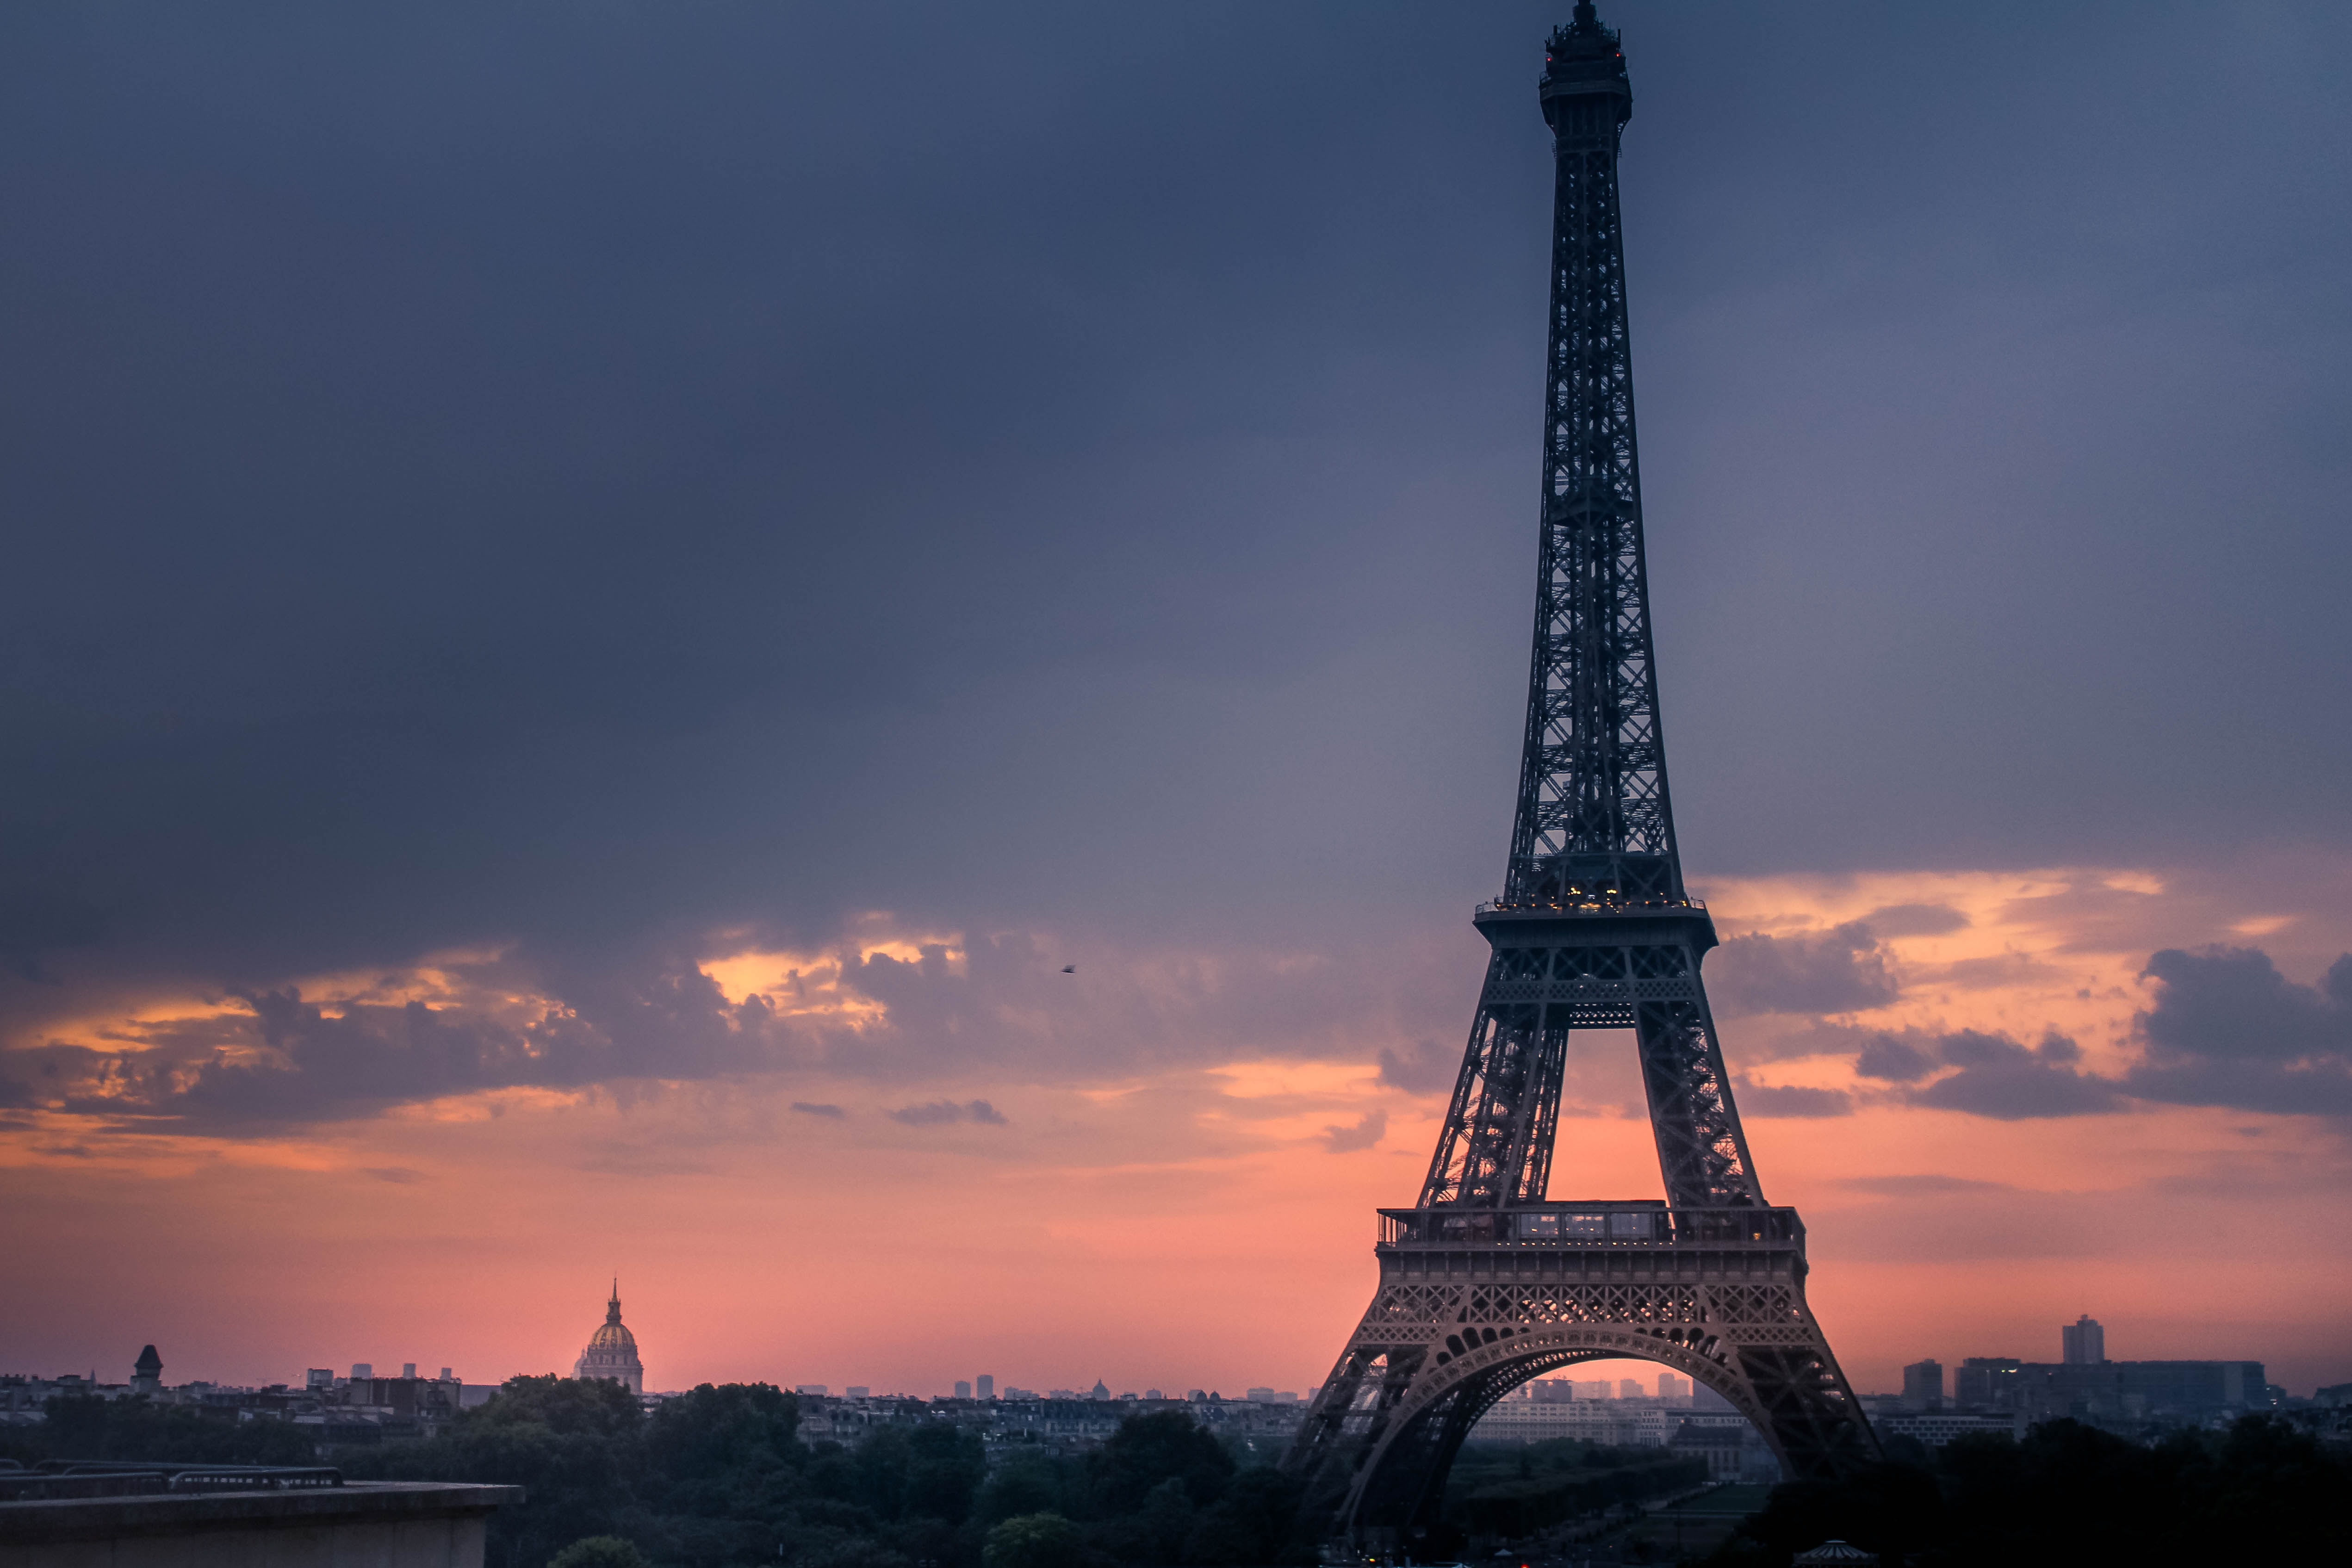 Eiffel Tower during sunset photography